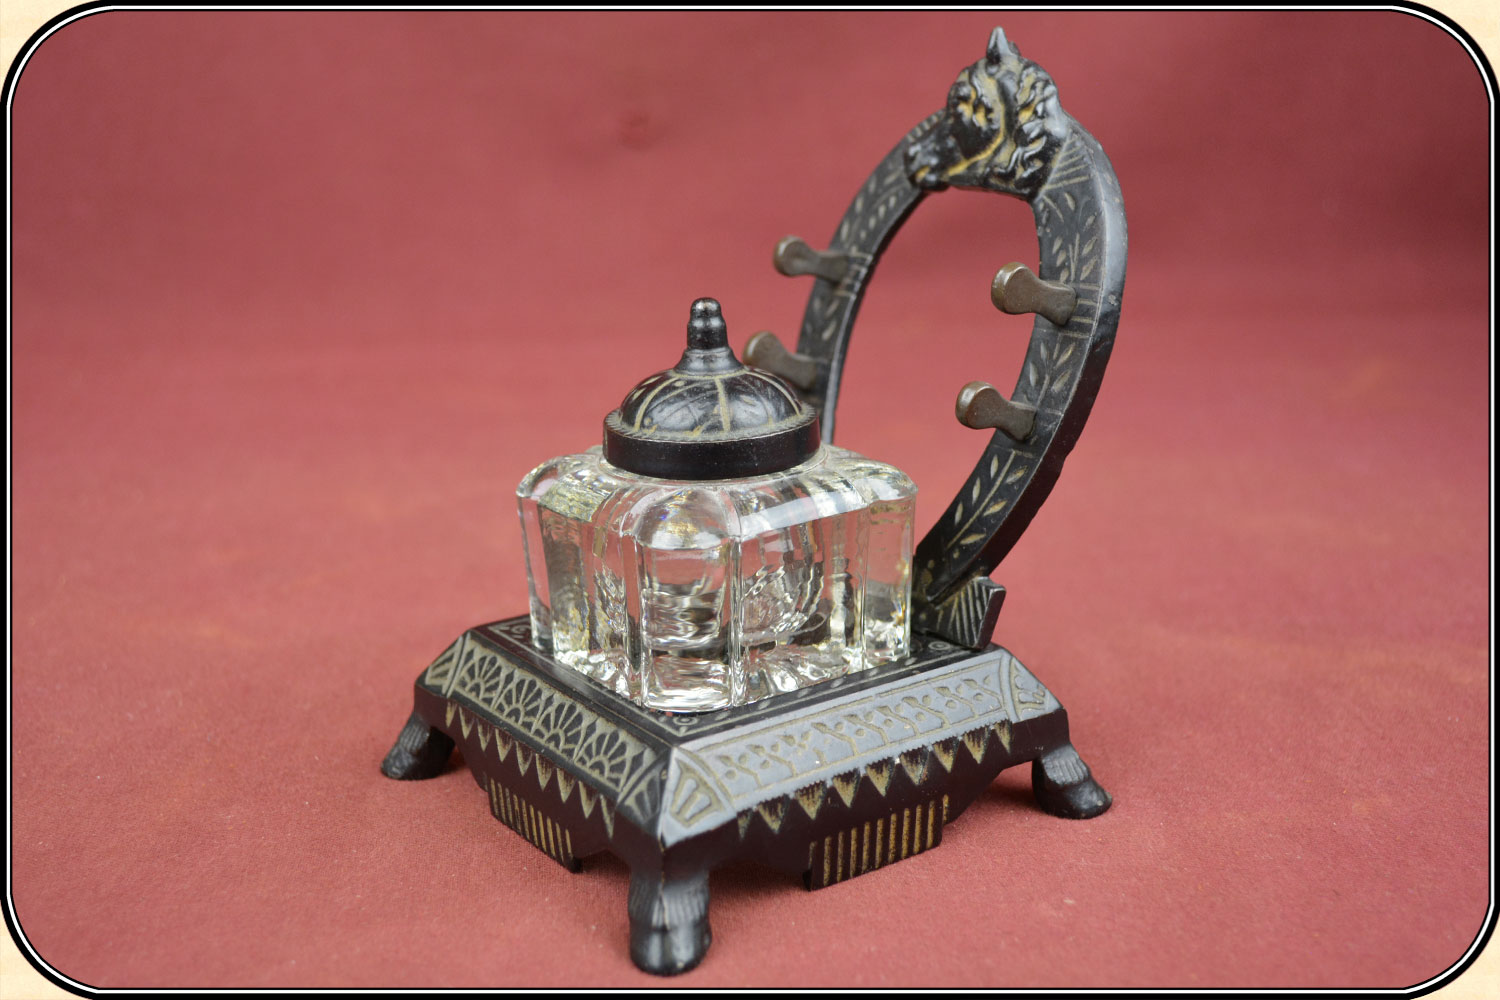 Pressed Glass Inkwell with Cast Iron Horseshoe Stand